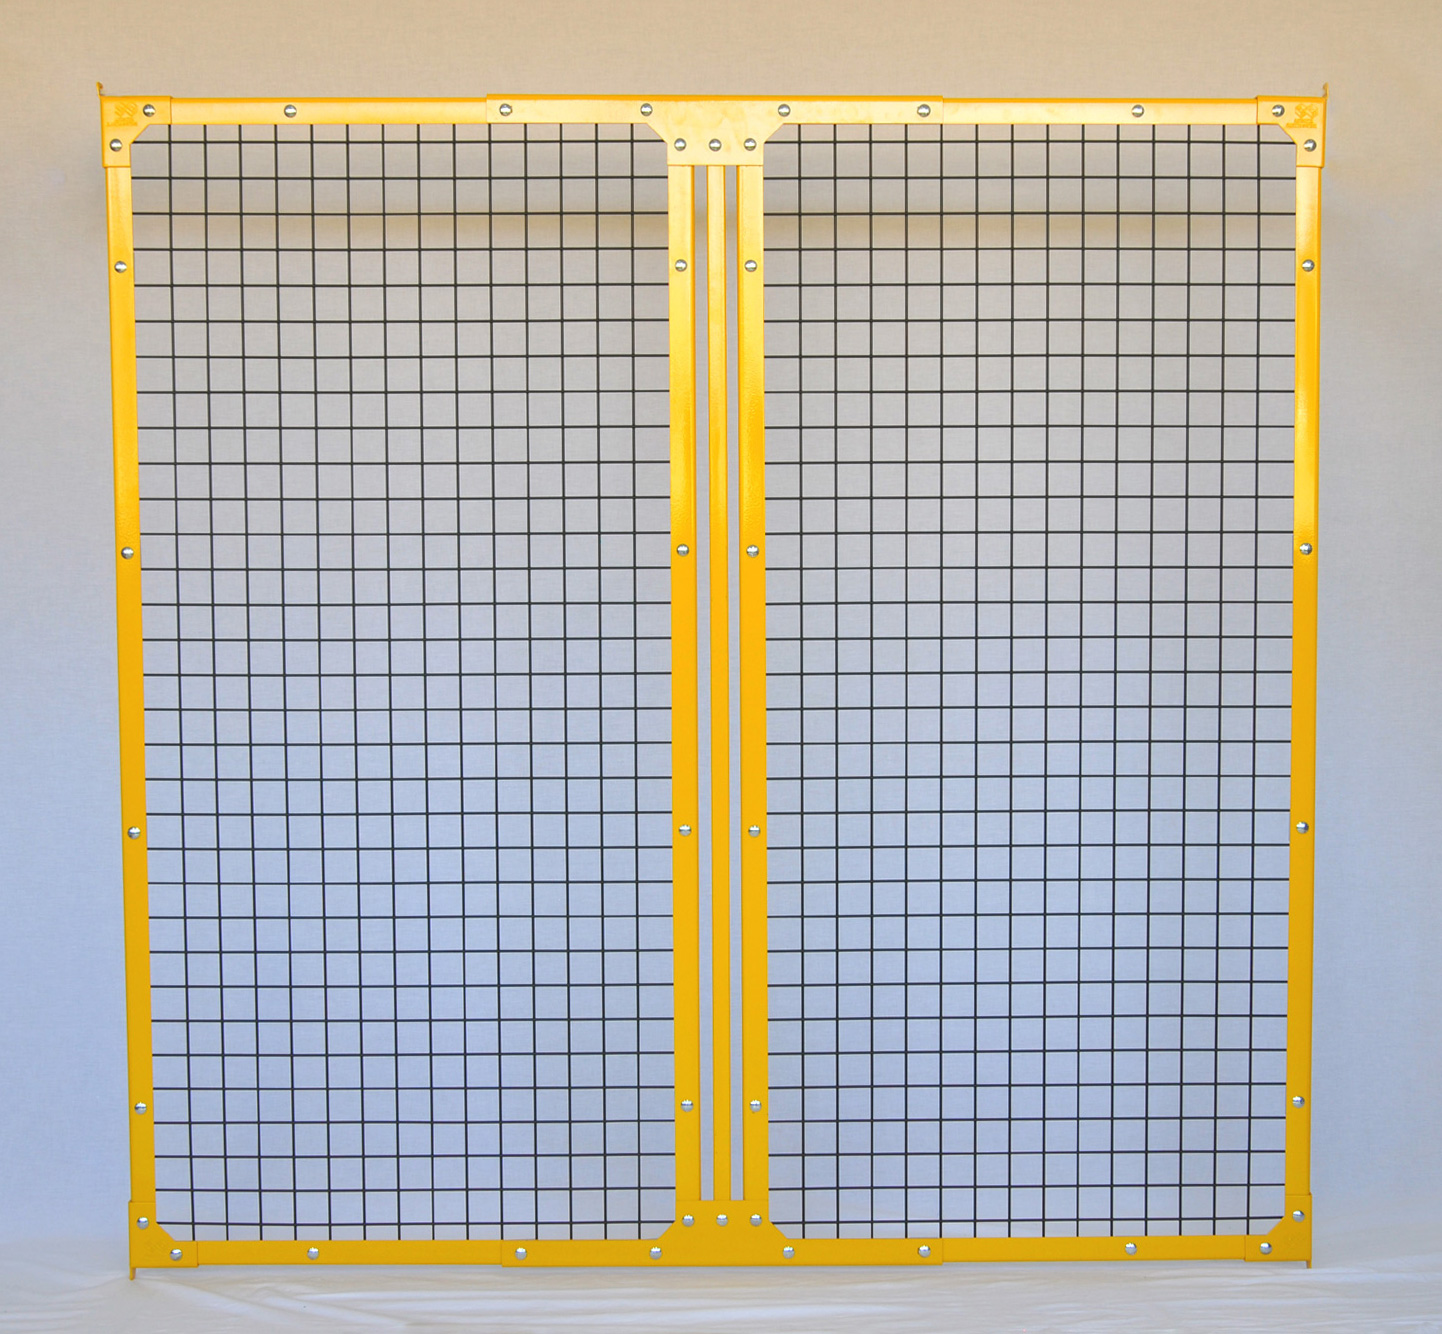 2900mm 2x2 Welded Steel Mesh Panels | Industrial Guarding